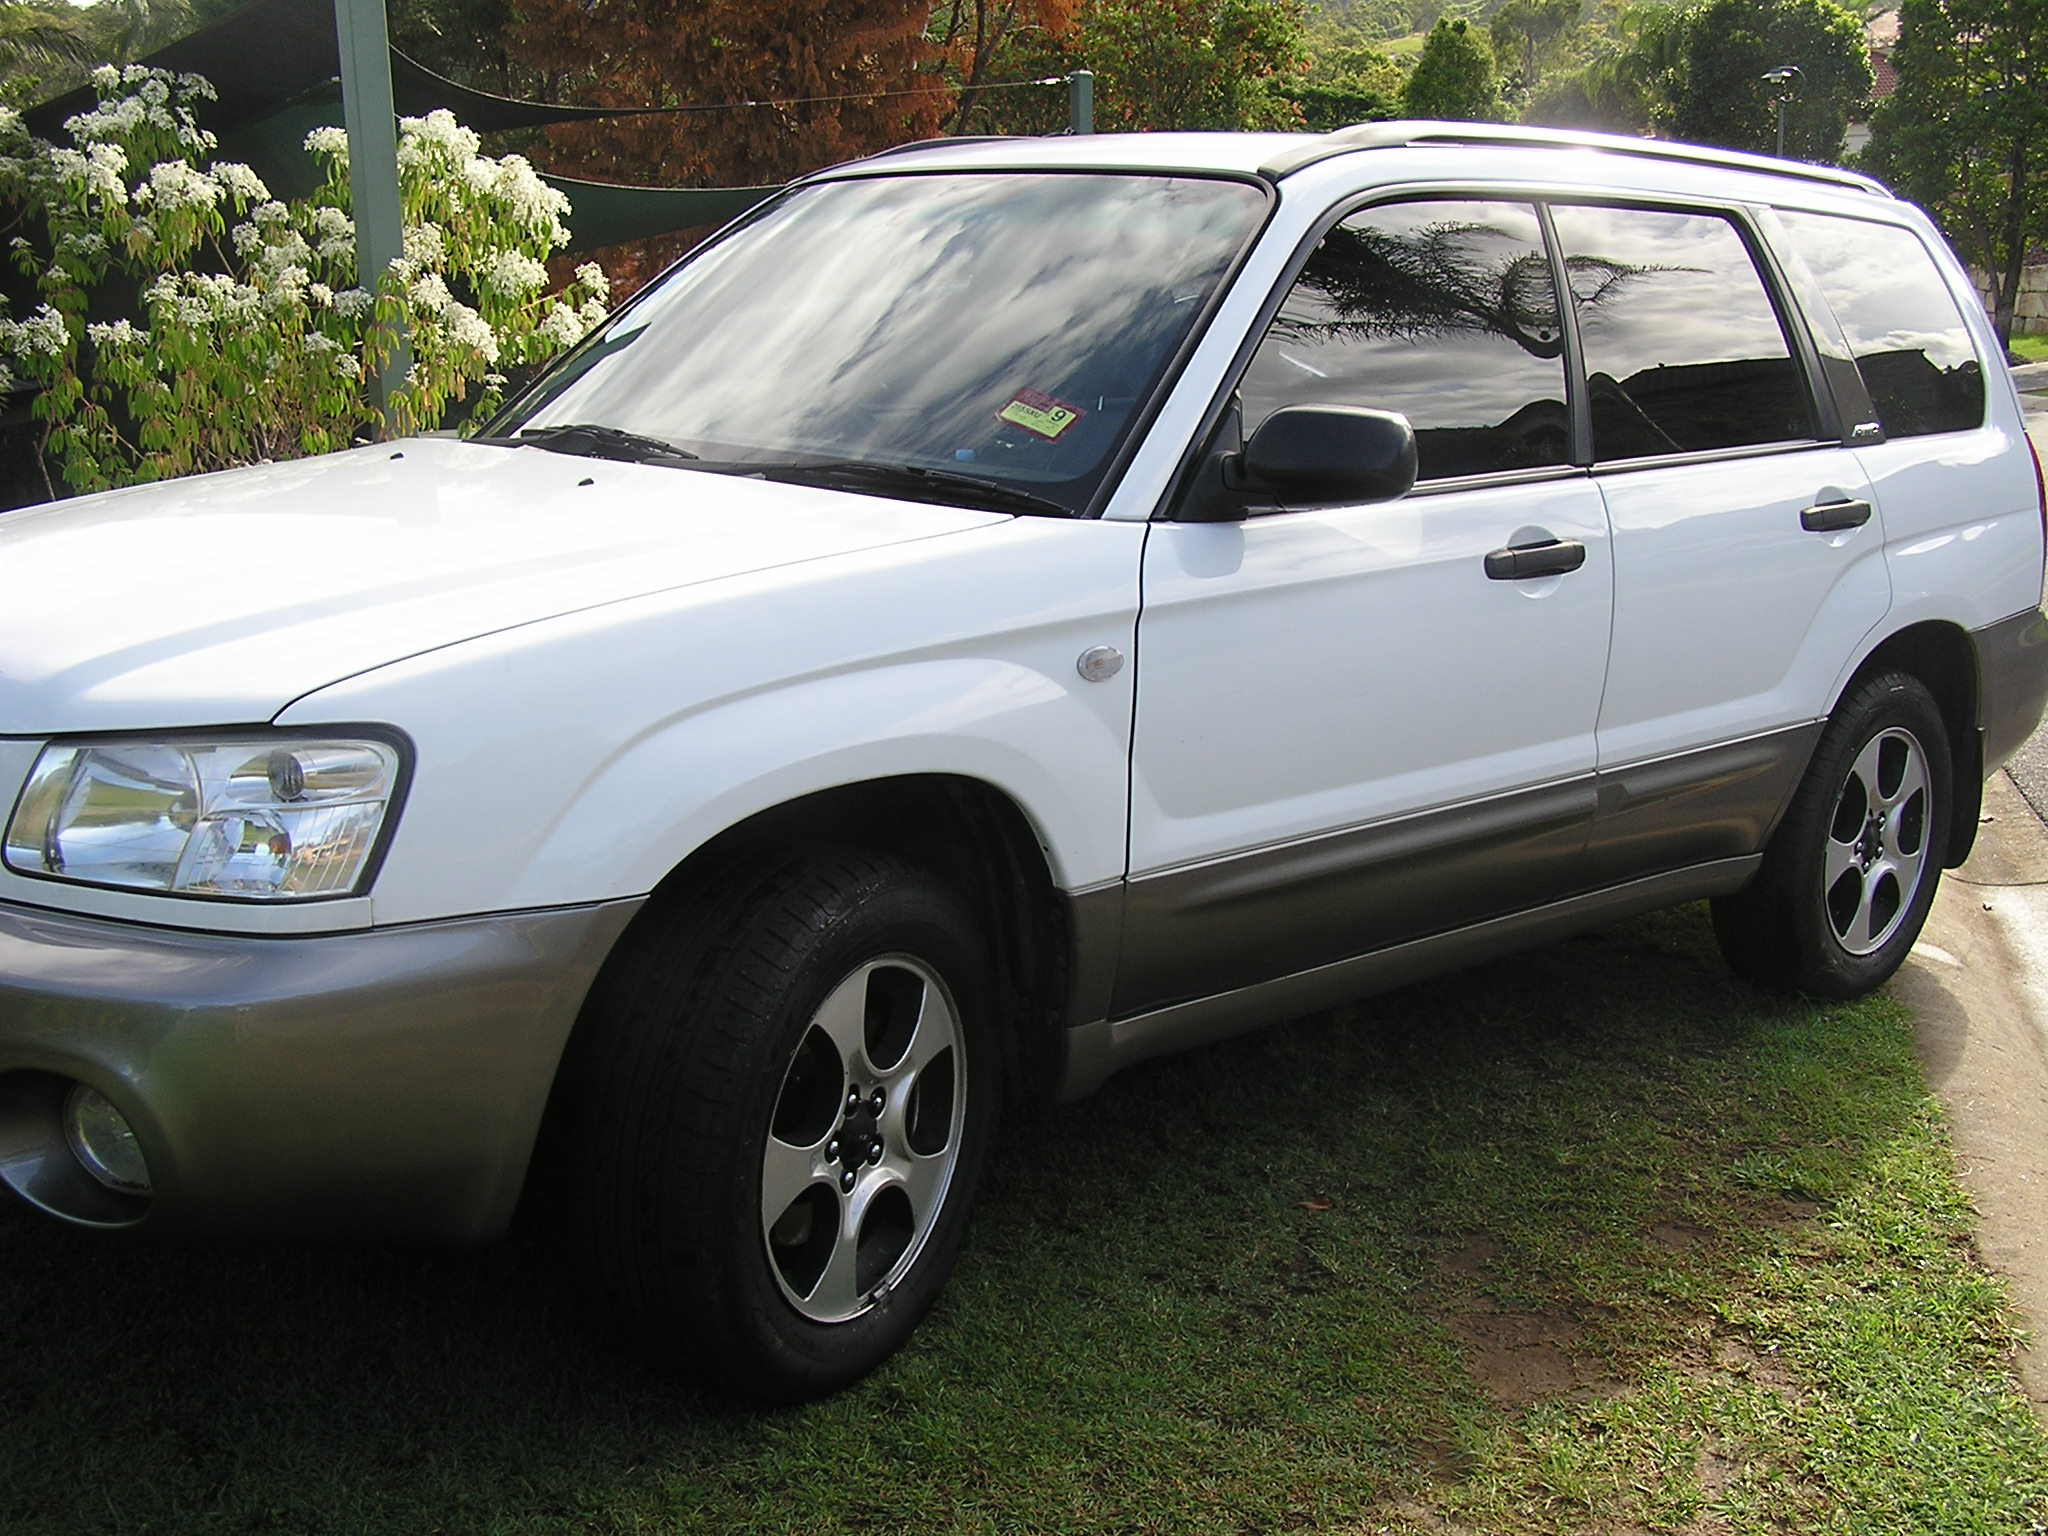 2002 subaru forester xs luxury my03 for sale qld gold coast. Black Bedroom Furniture Sets. Home Design Ideas